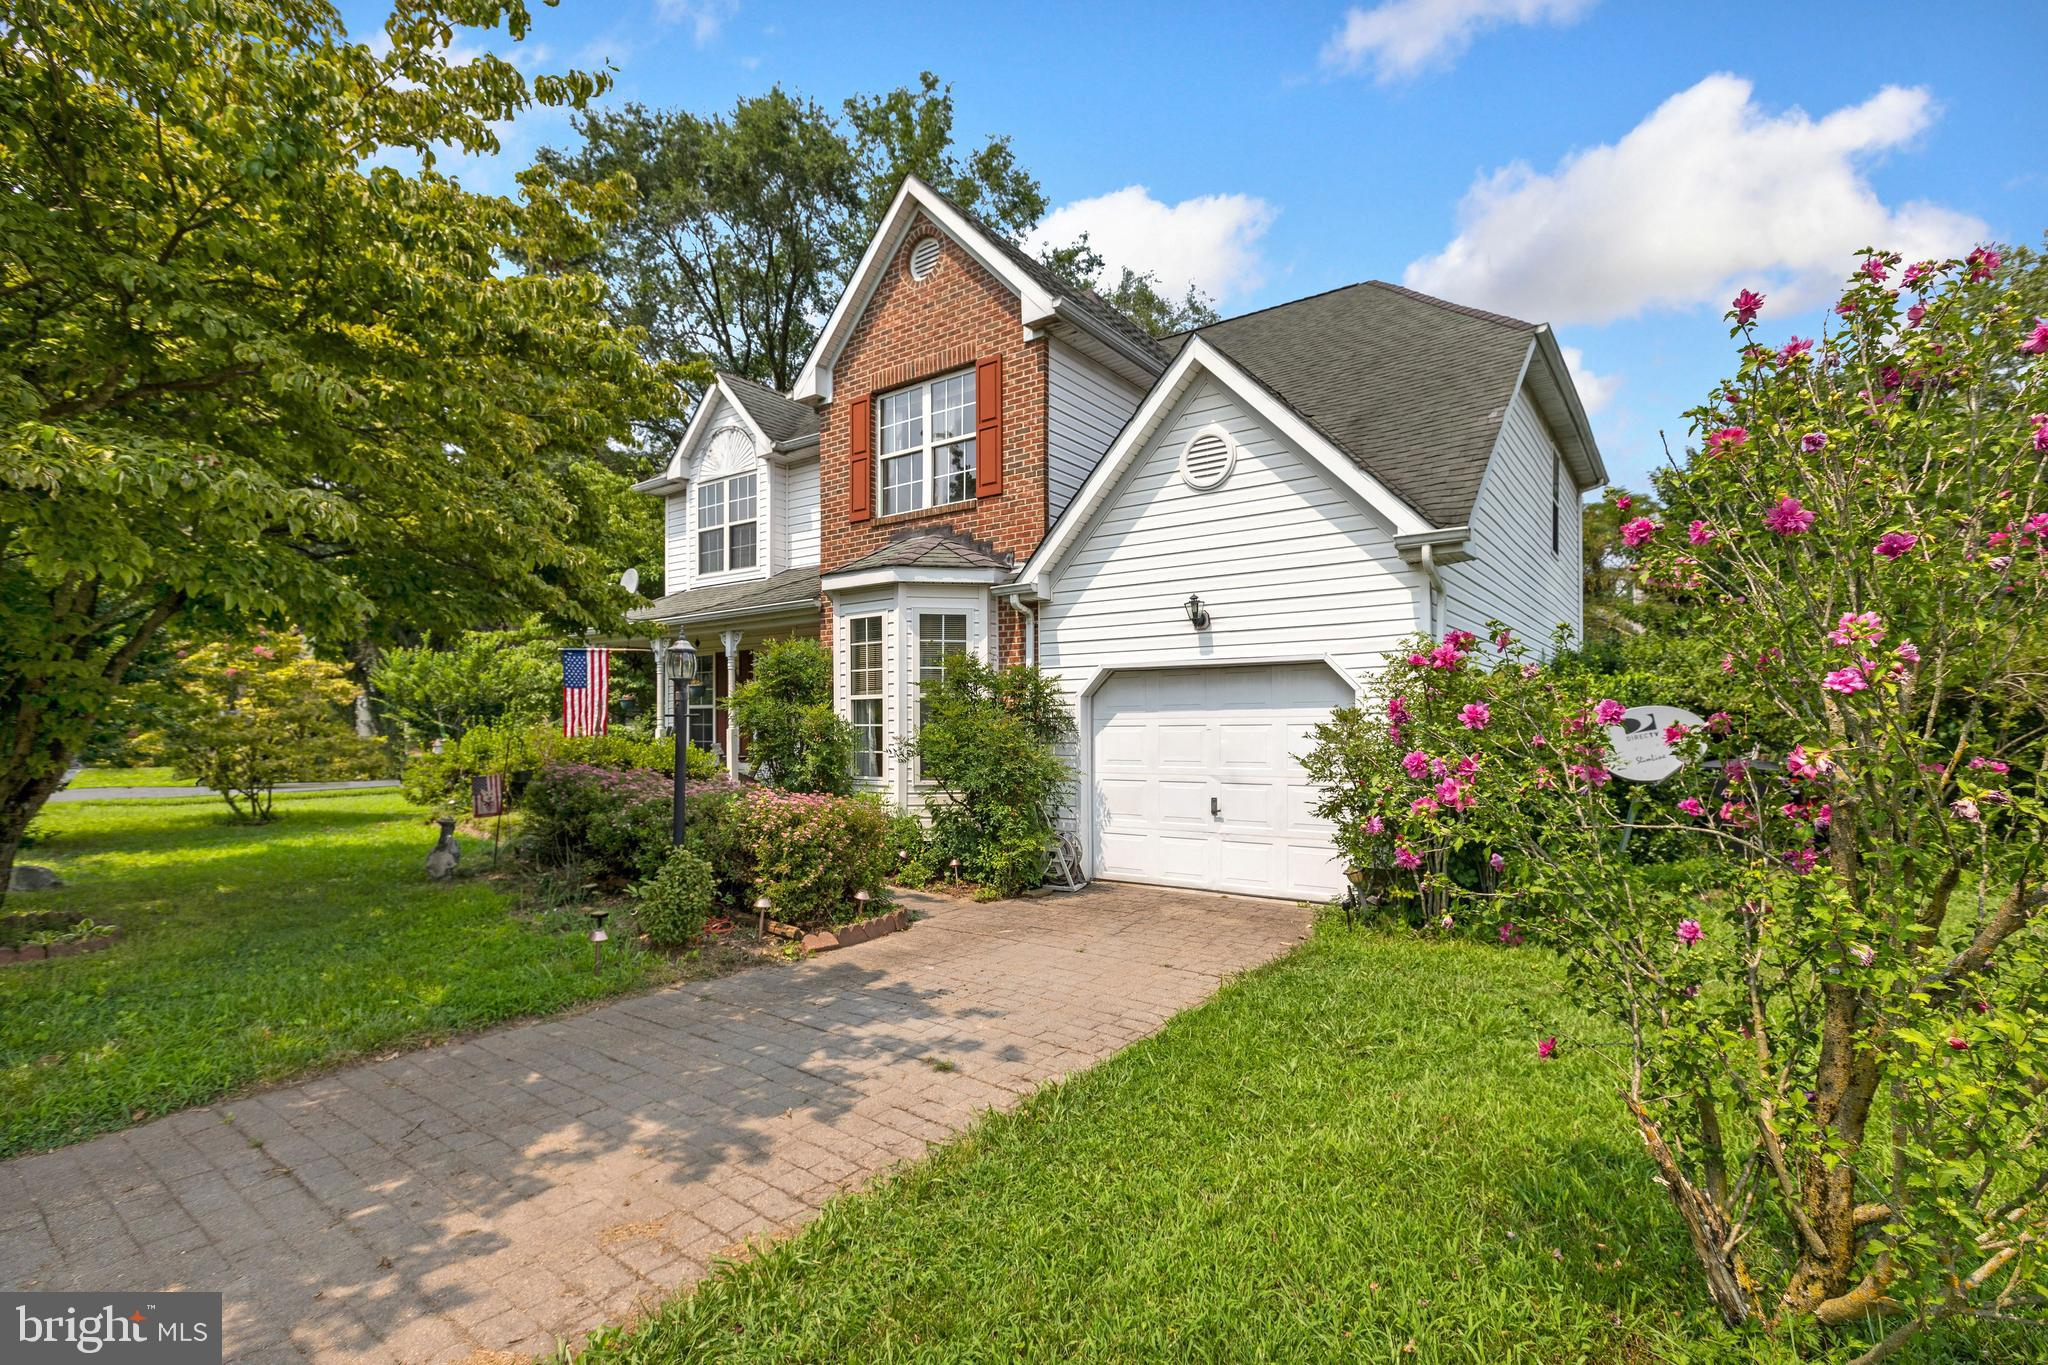 This gorgeous colonial home located in Harbor Pointe of West Salisbury boasts 4 spacious bedrooms, 2